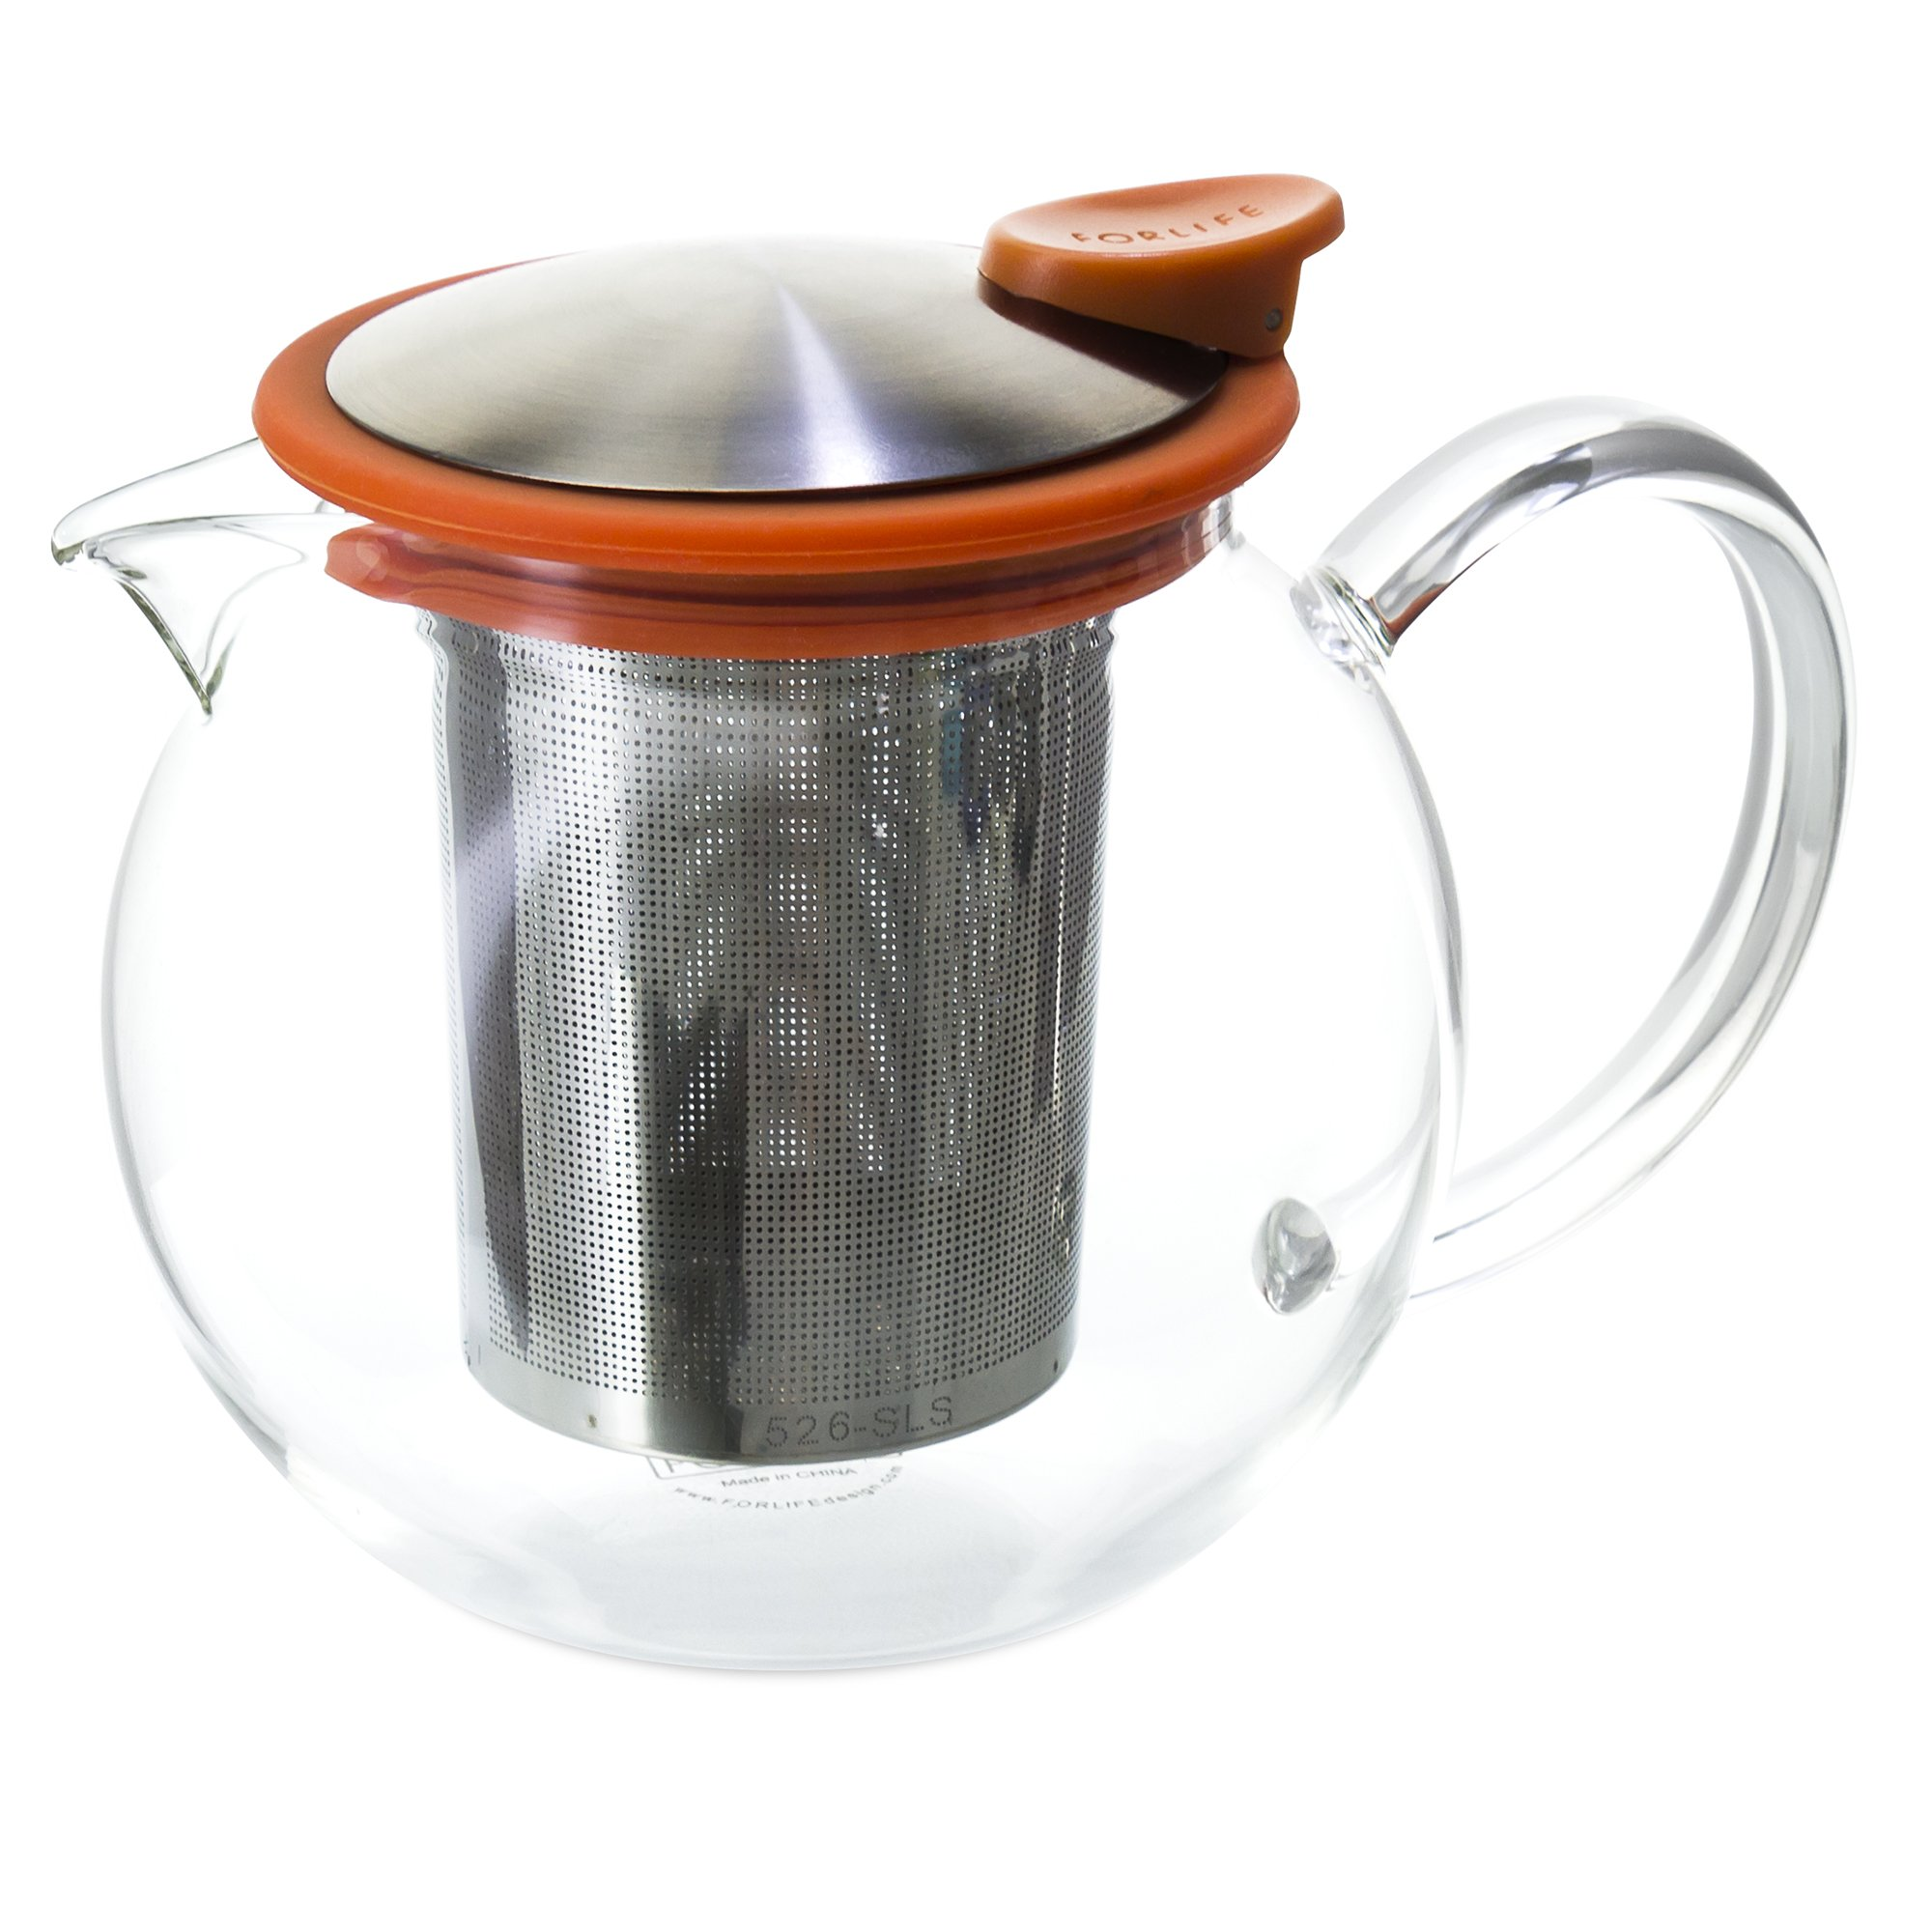 FORLIFE Bola Glass Teapot with Basket Infuser, 25oz./750ml., Carrot